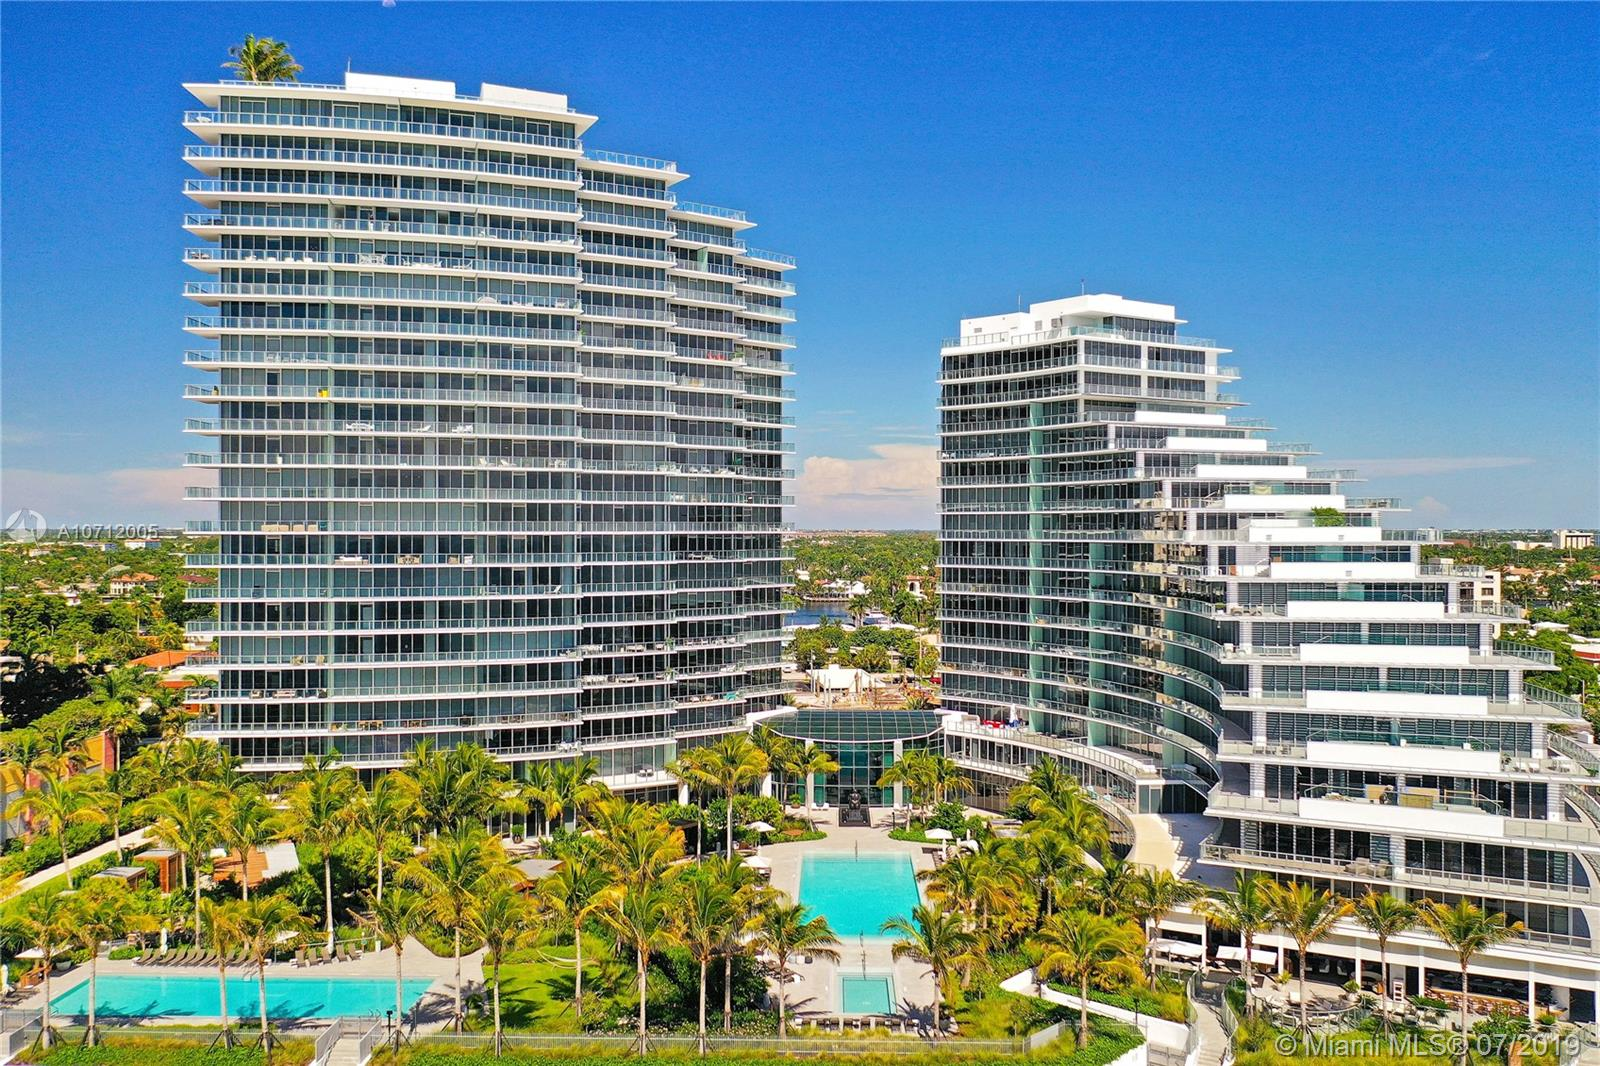 image #1 of property, Auberge Beach Residences, Unit S2003